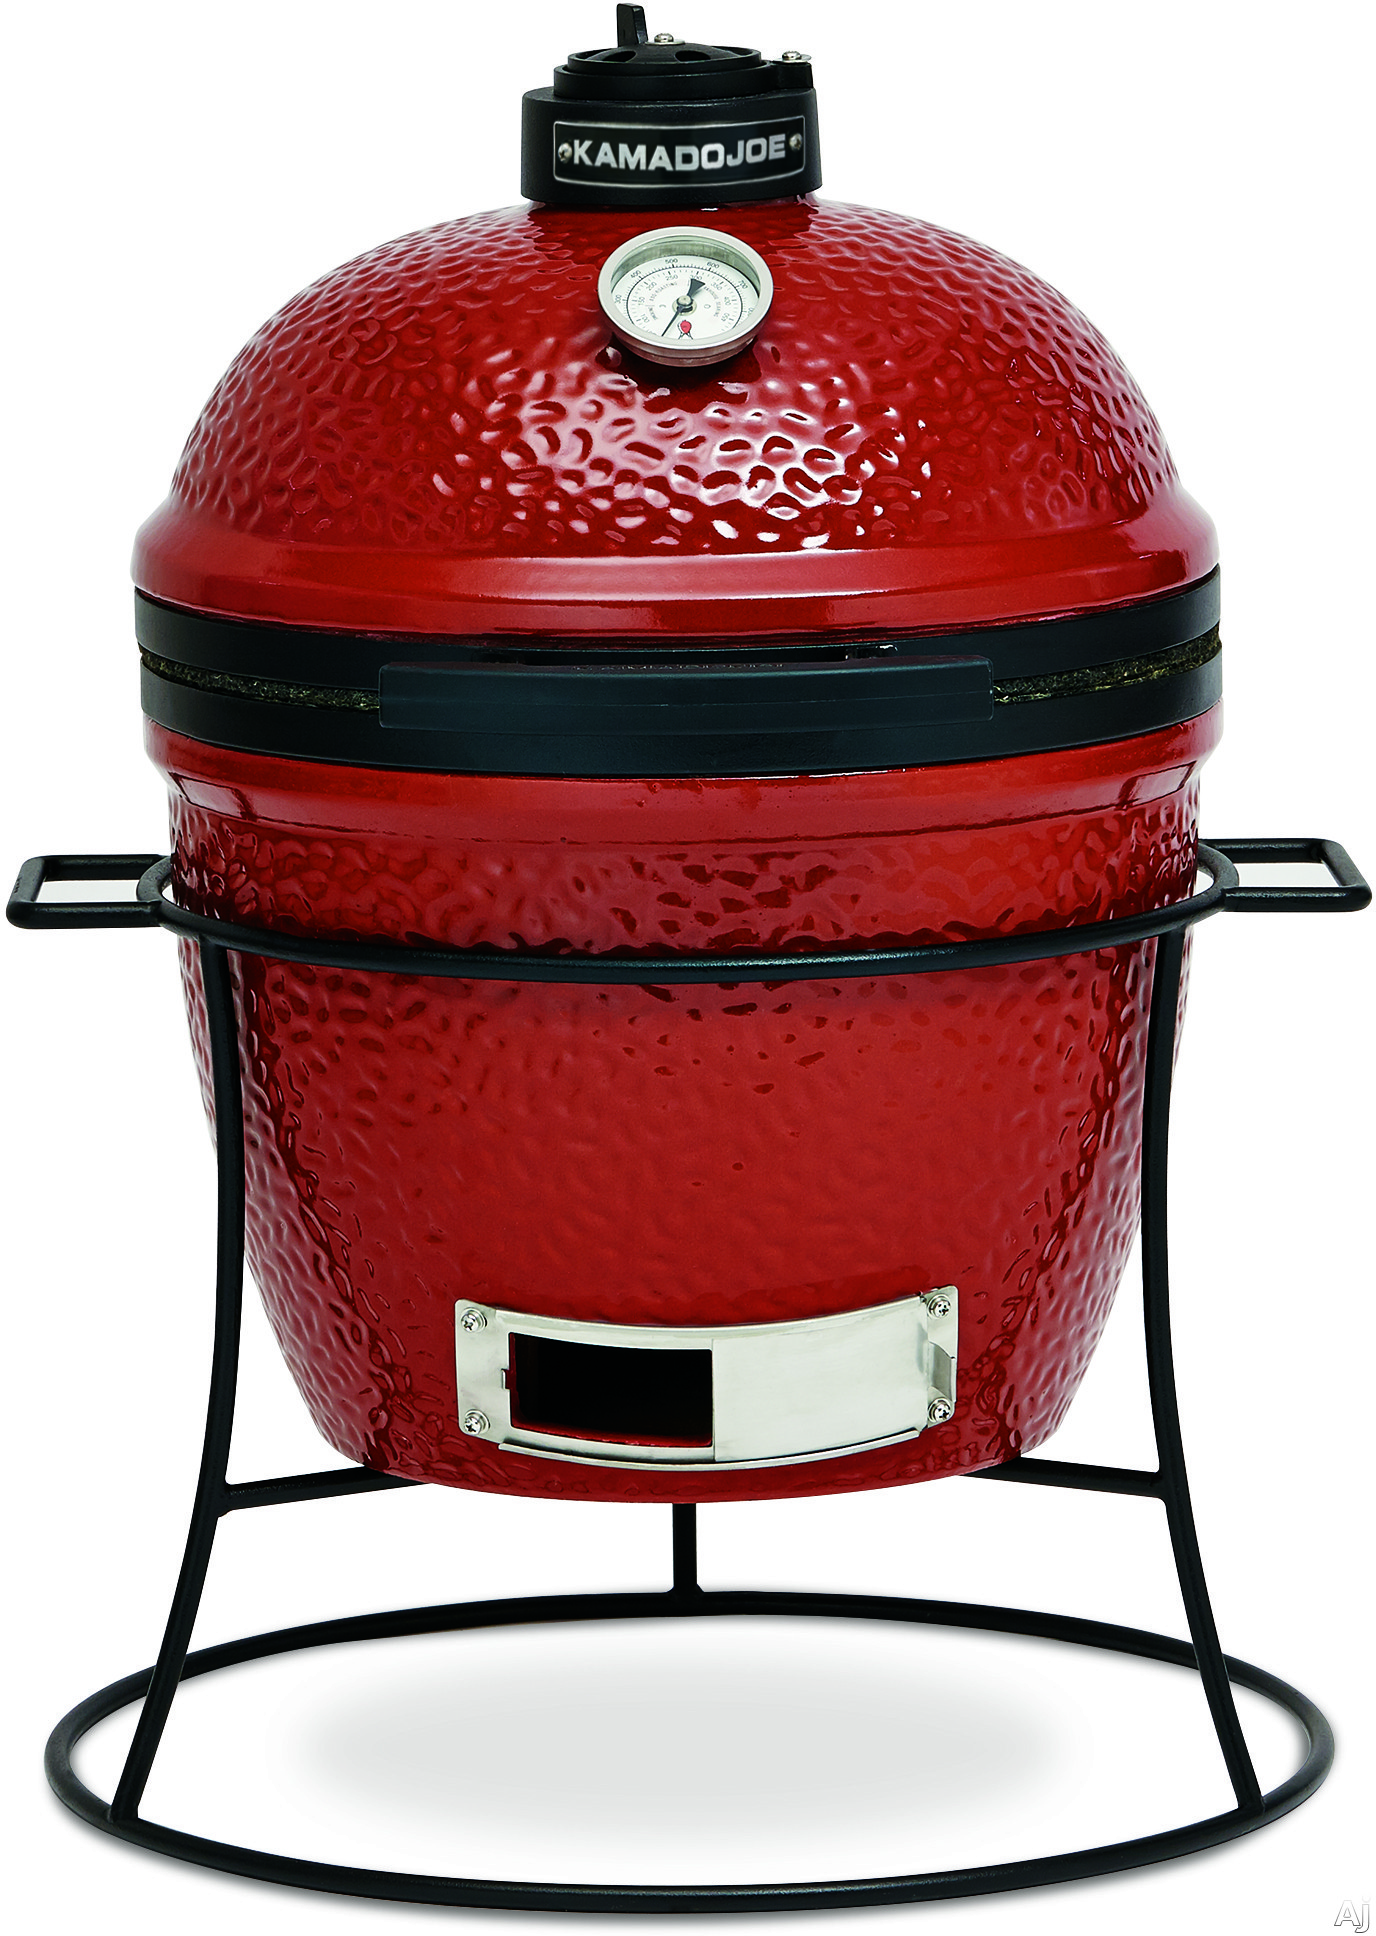 "click for Full Info on this Kamado Joe KJ13XH 13"" Portable Kamado Grill with 148 sq in Cooking Surface  Built in Thermometer  Ceramic Heat Deflector  Grill Gripper and Ash Tool"